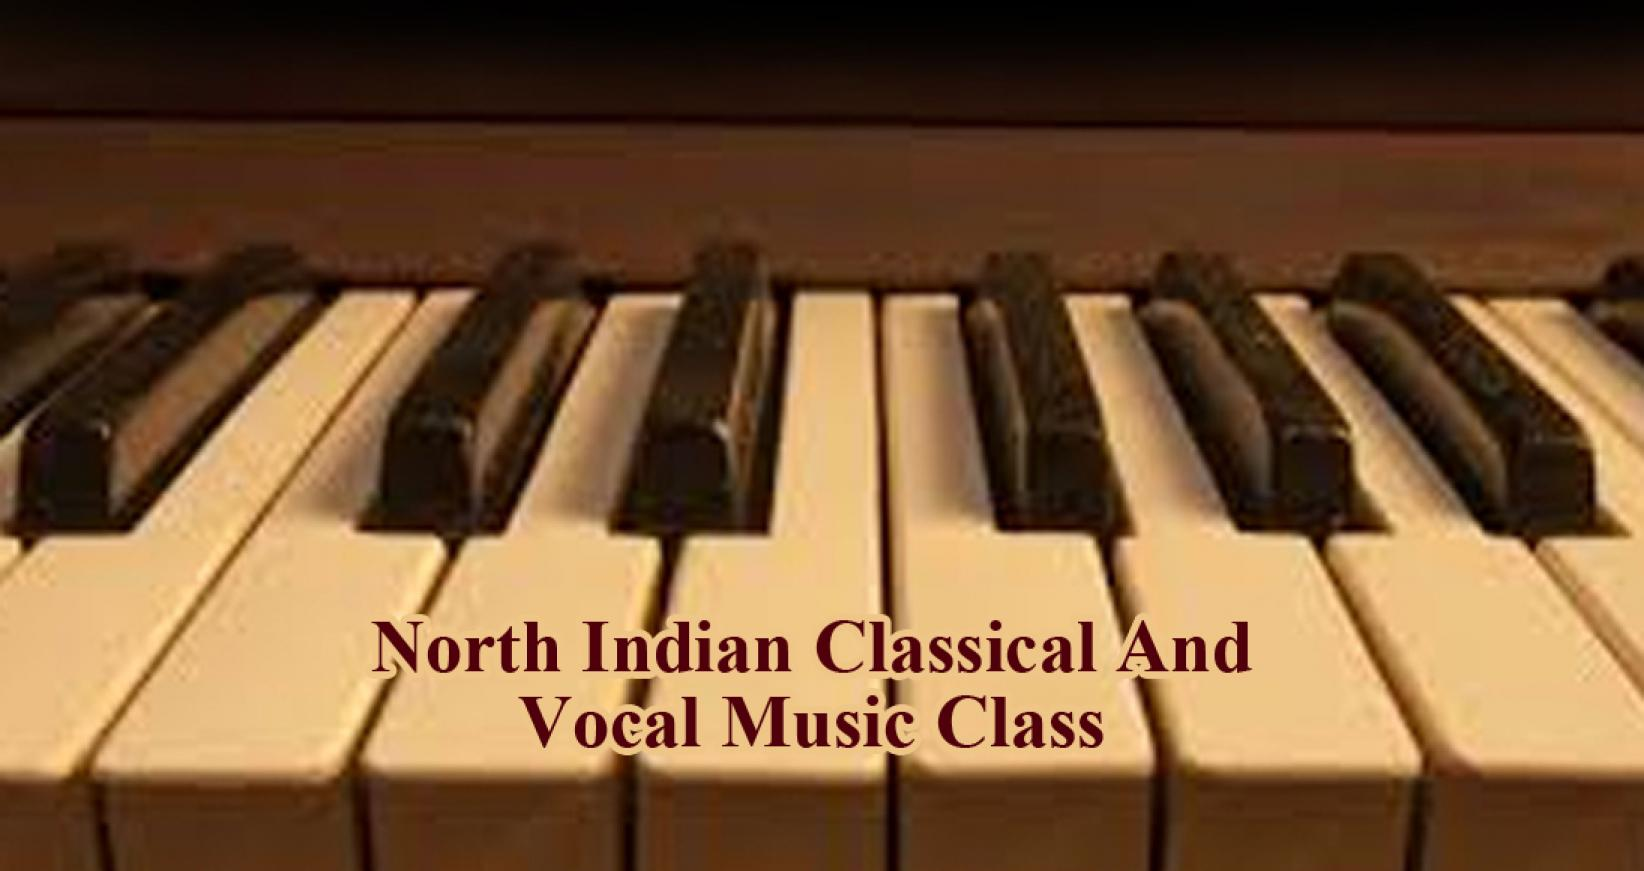 North Indian Classical And Vocal Music Class